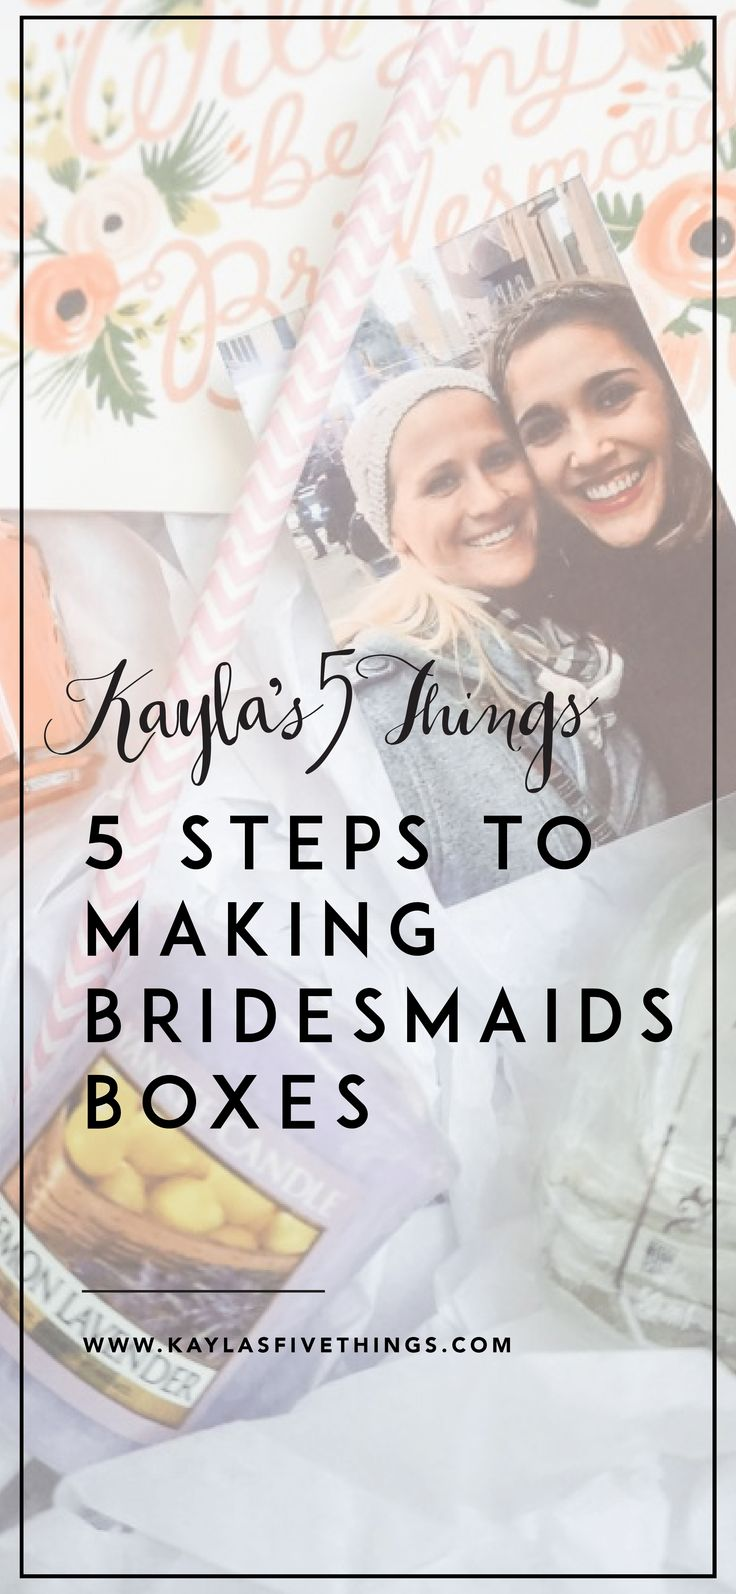 5 steps to making bridesmaids' boxes | Kayla's Five Things